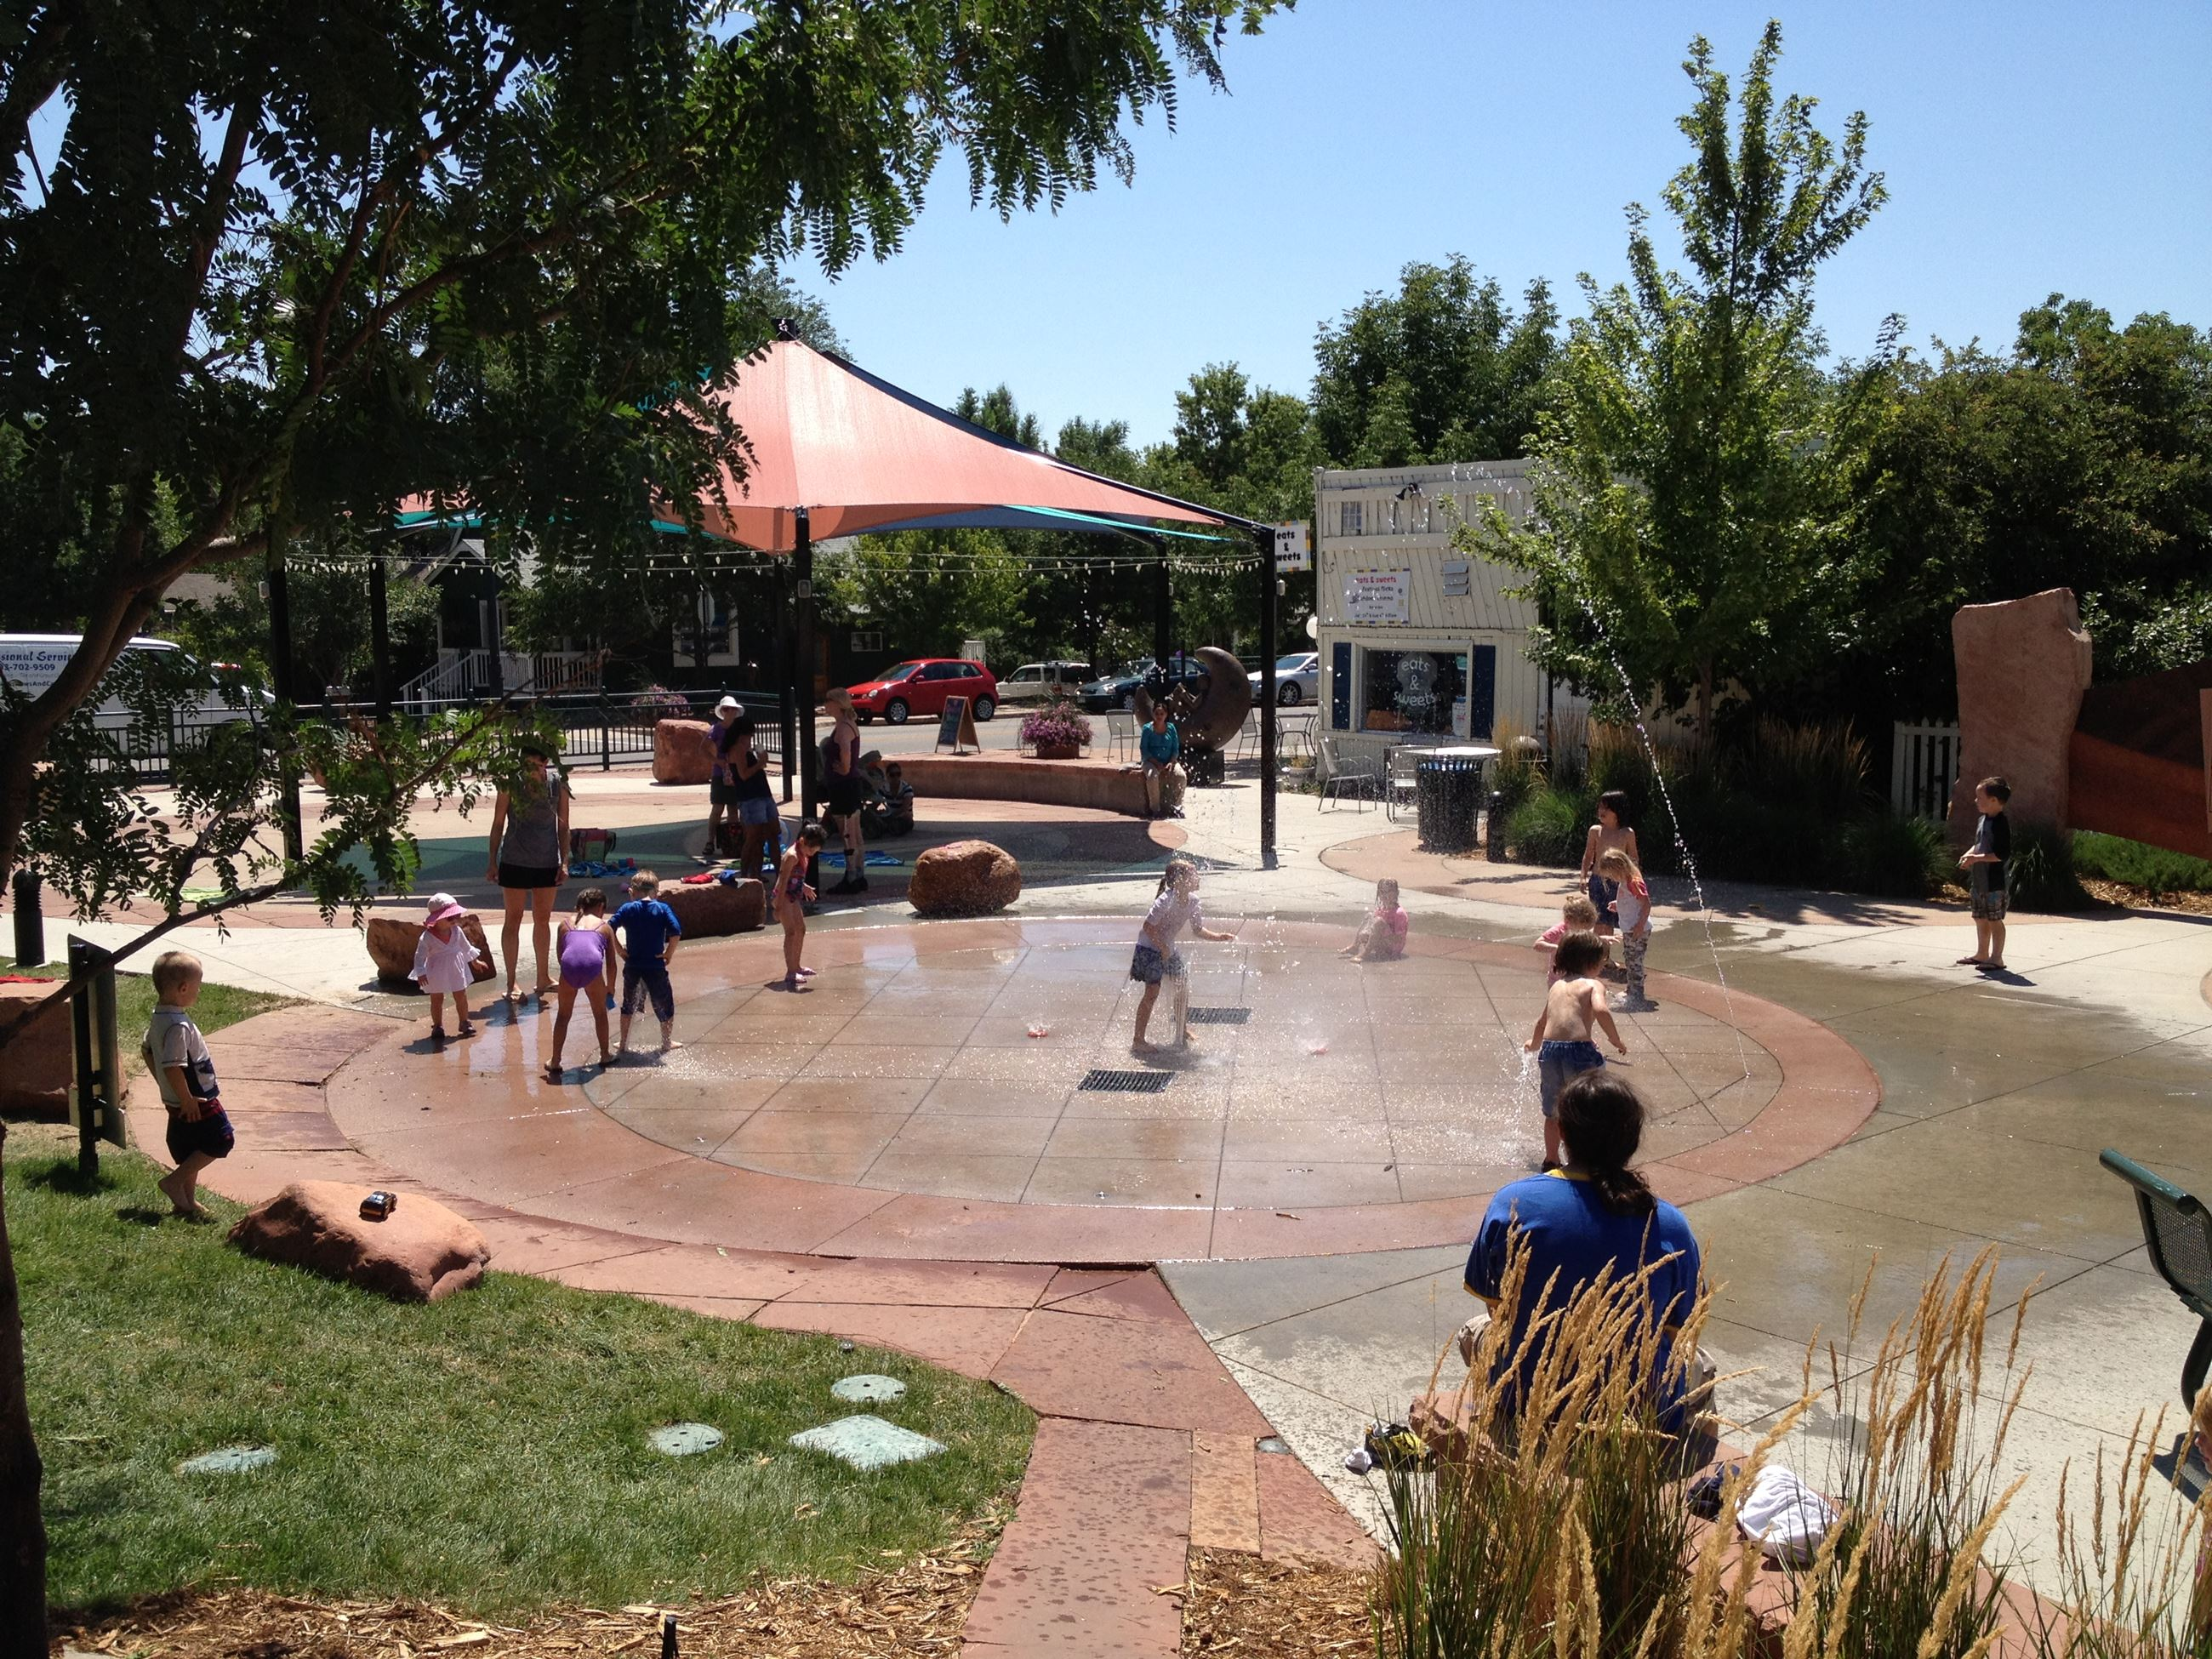 The Splash Pad at Festival Plaza